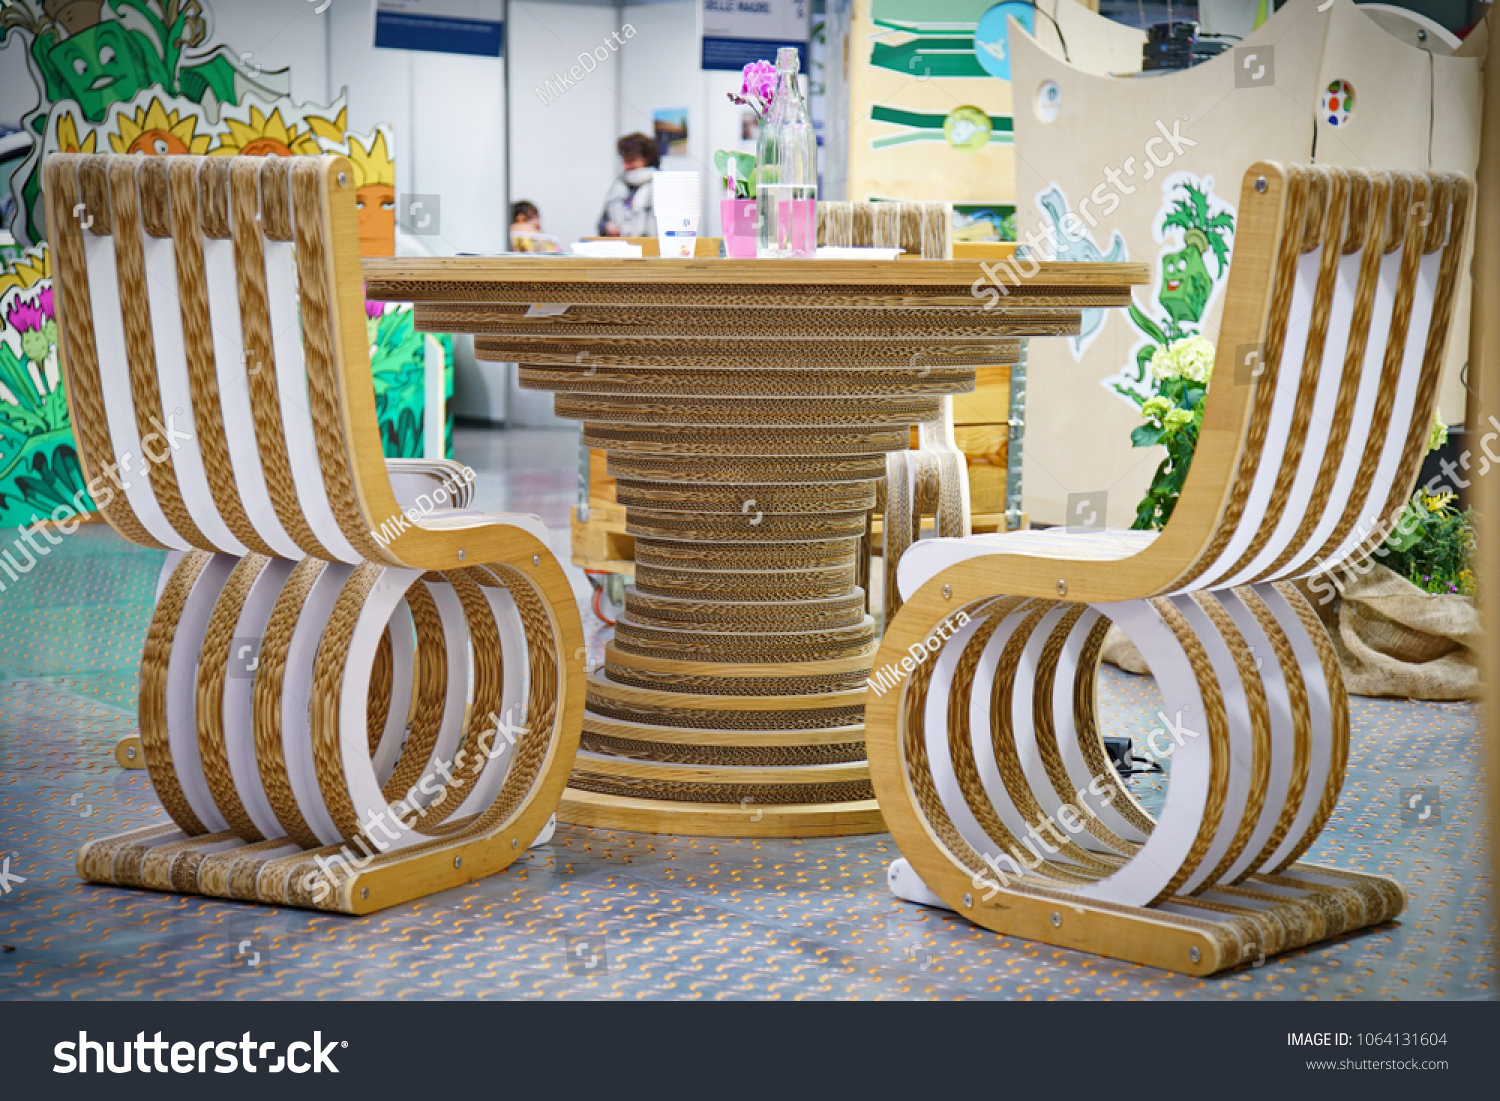 Eco friendly creative office table and chairs made from recycled cardboard crafts and ecology